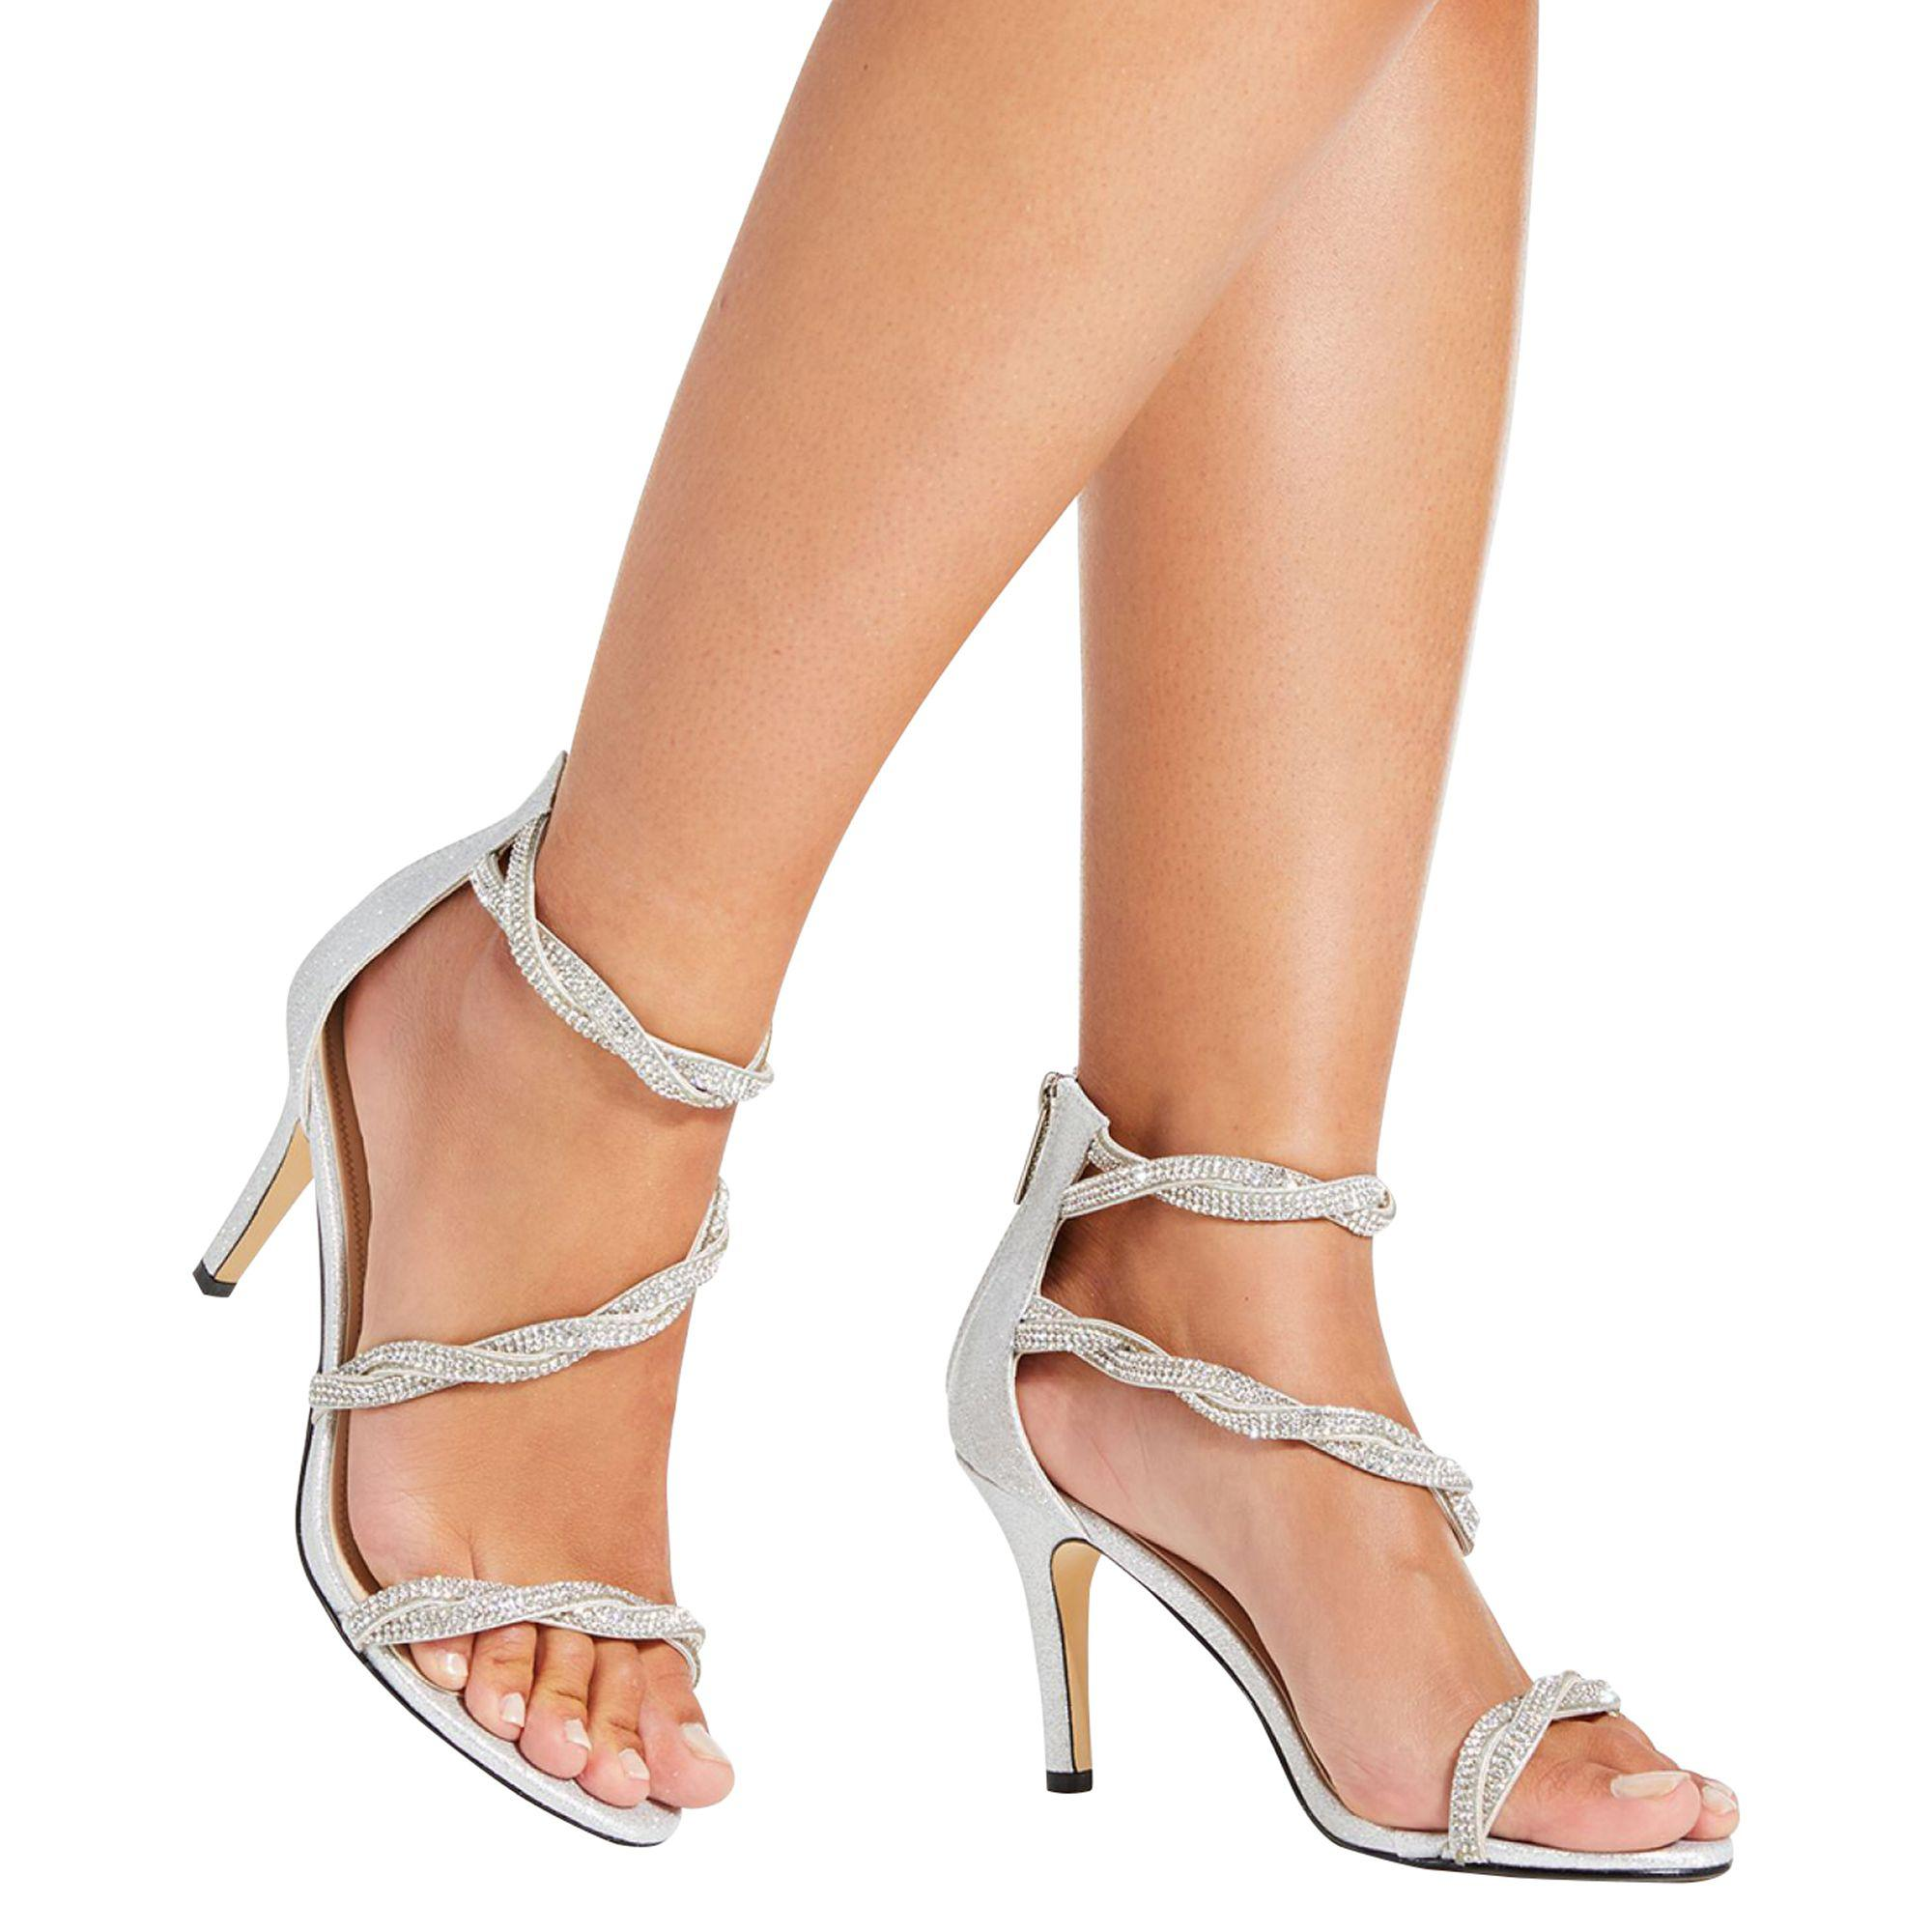 ac5586fa5954 Quiz - Metallic Silver Diamante Twist Sandals - Lyst. View fullscreen